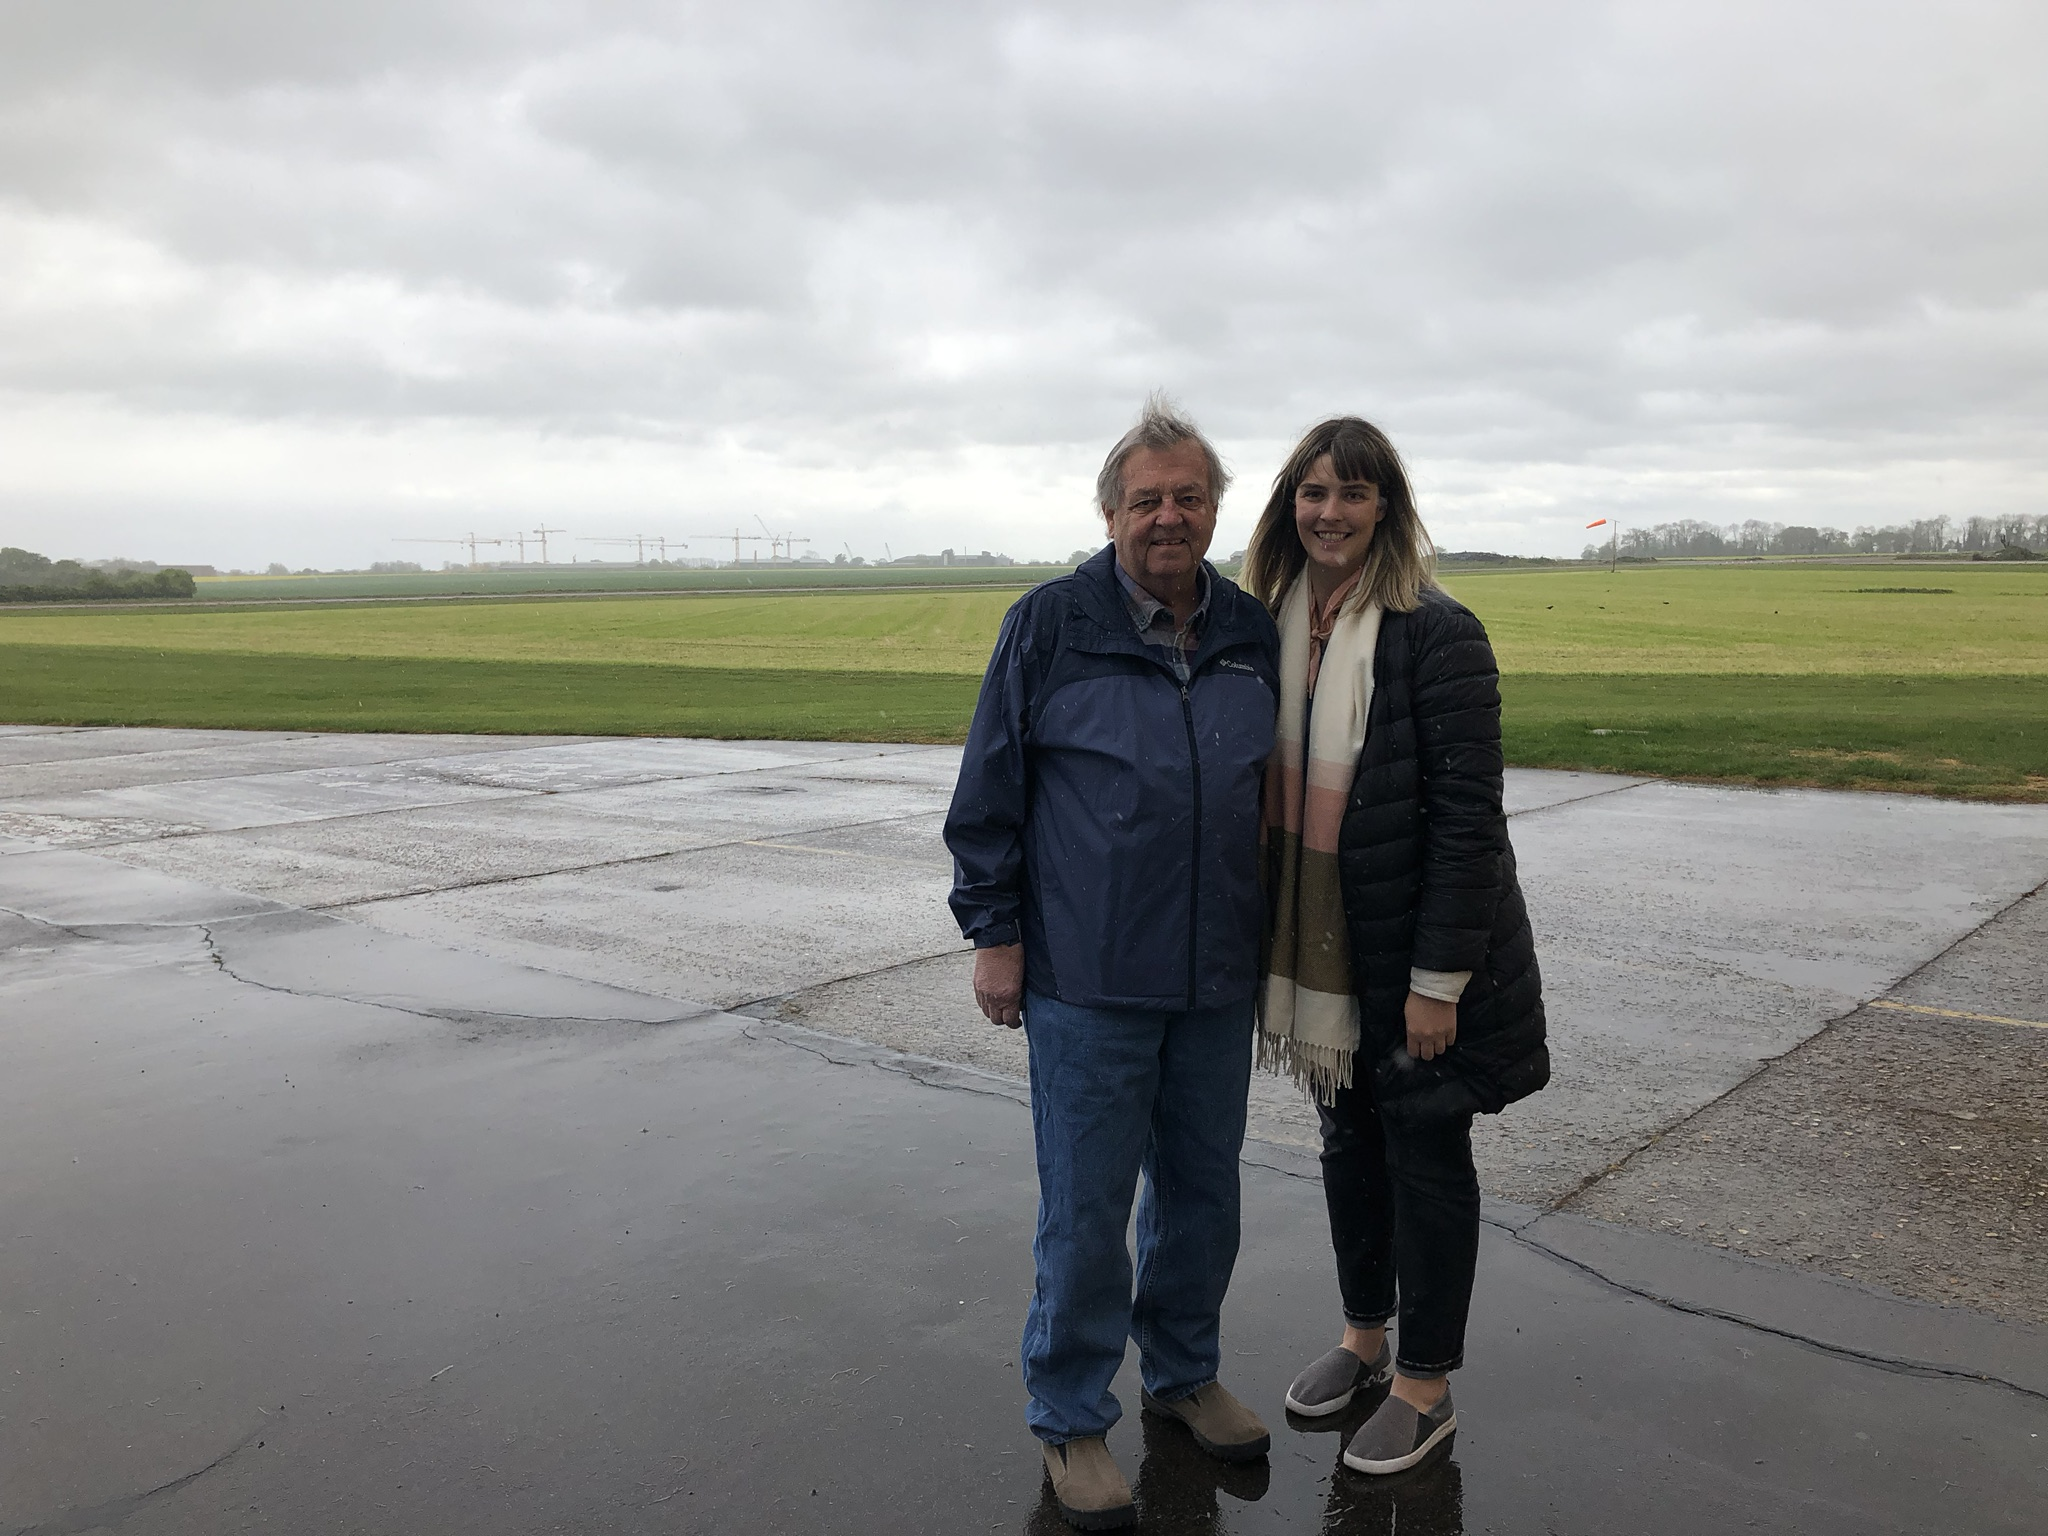 5 Moments from my Visit to Shipdham Airfield that Brought my Grandfather's WWII Service on a B-24 Back to Life